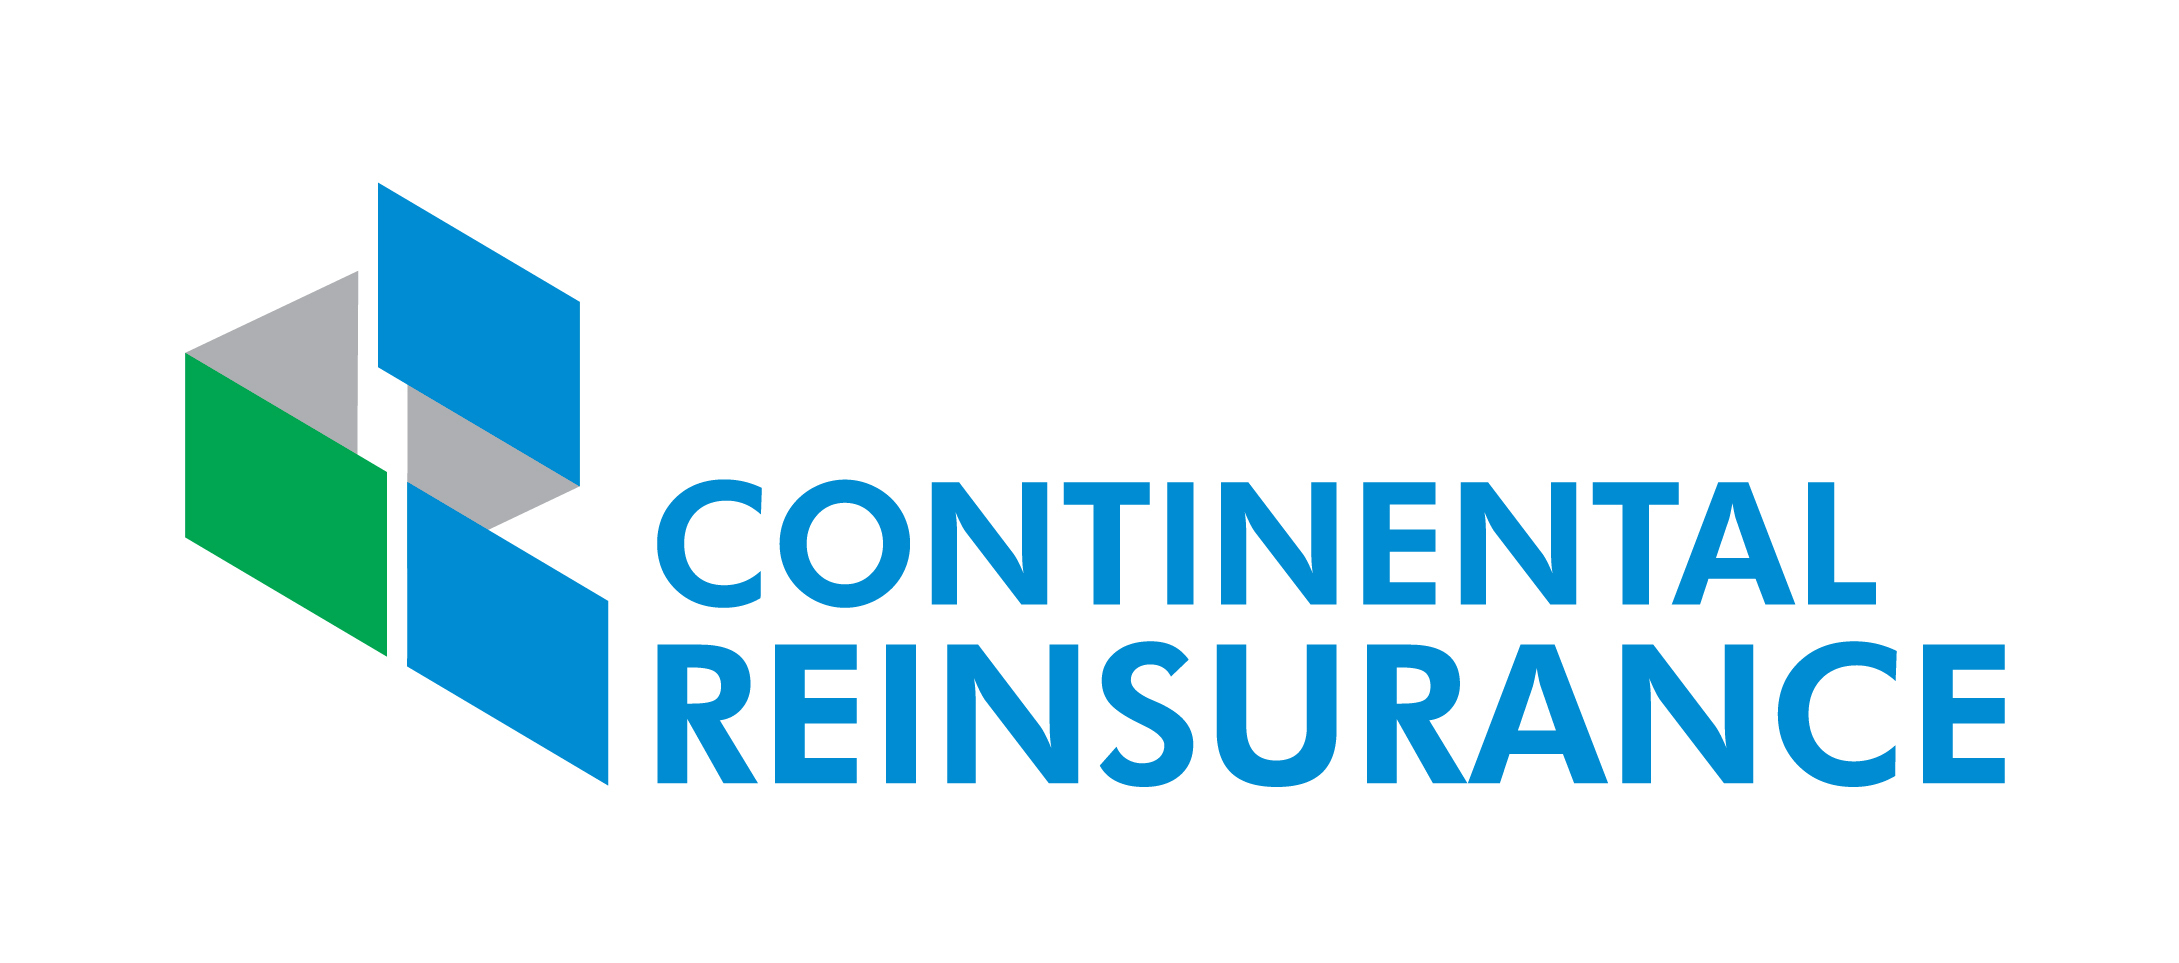 continental re